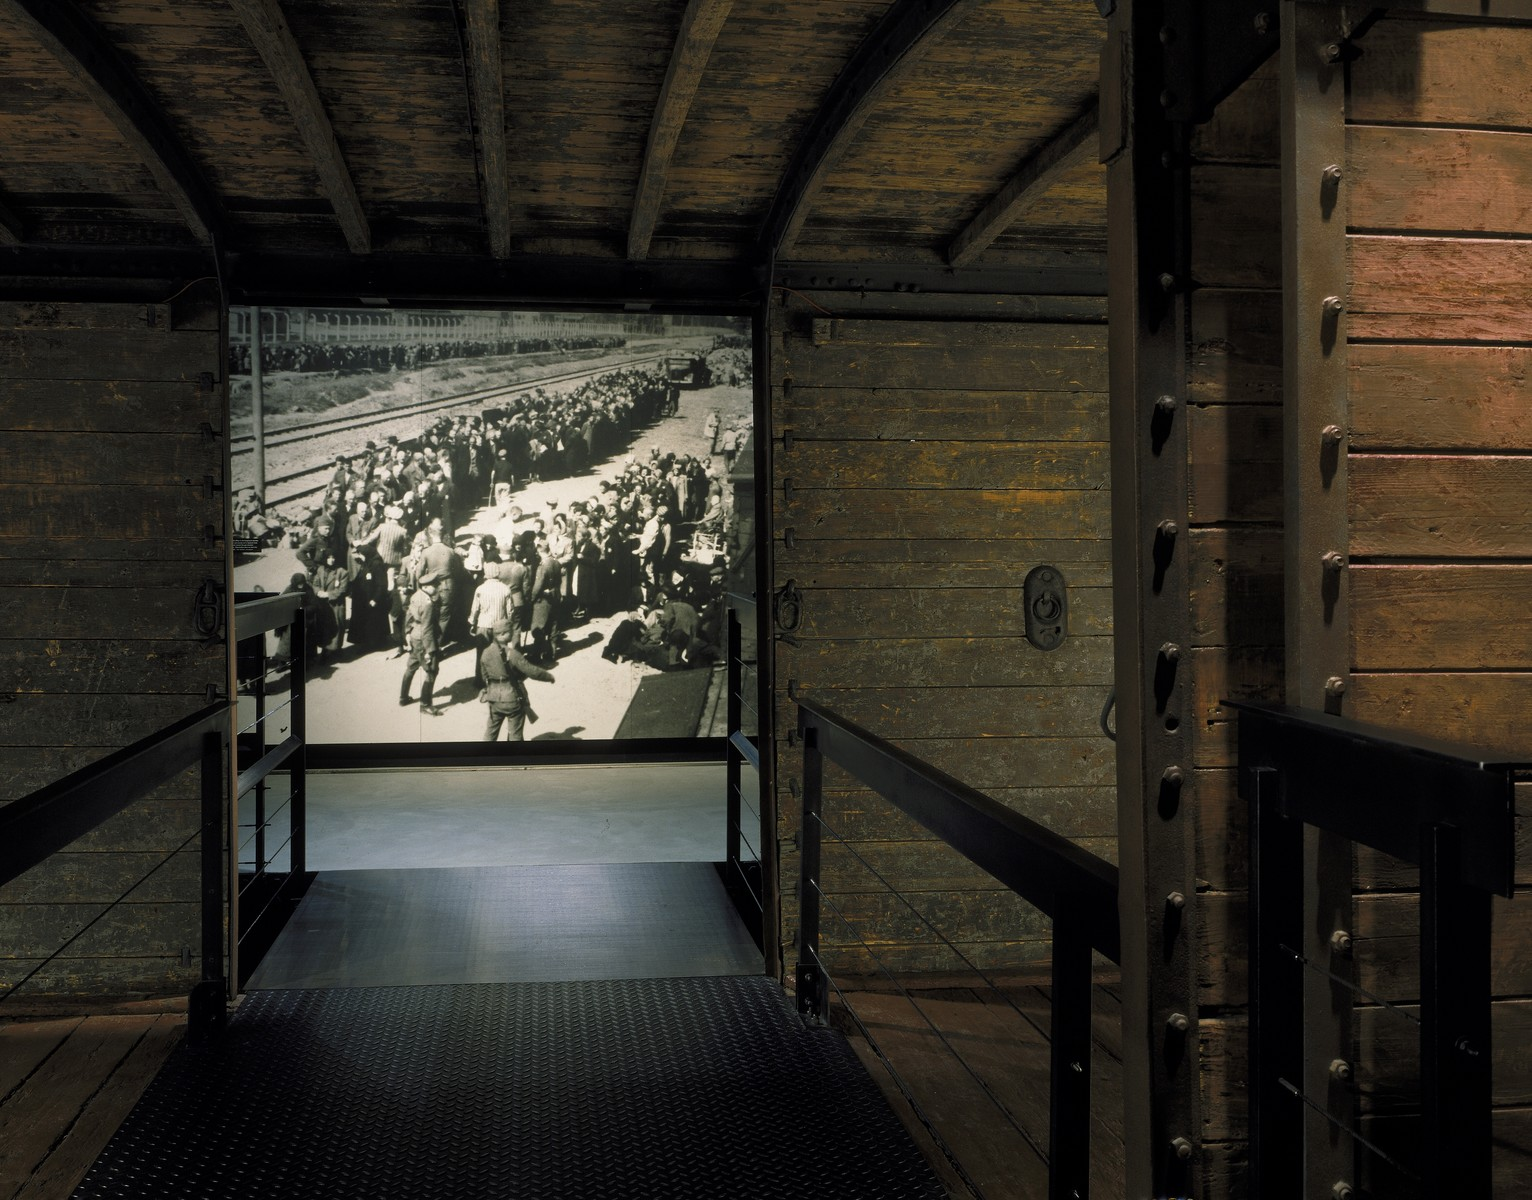 View of the photo mural of a selection at Auschwitz-Birkenau taken through the open railcar on the third floor of the permanent exhibition at the U.S. Holocaust Memorial Museum.